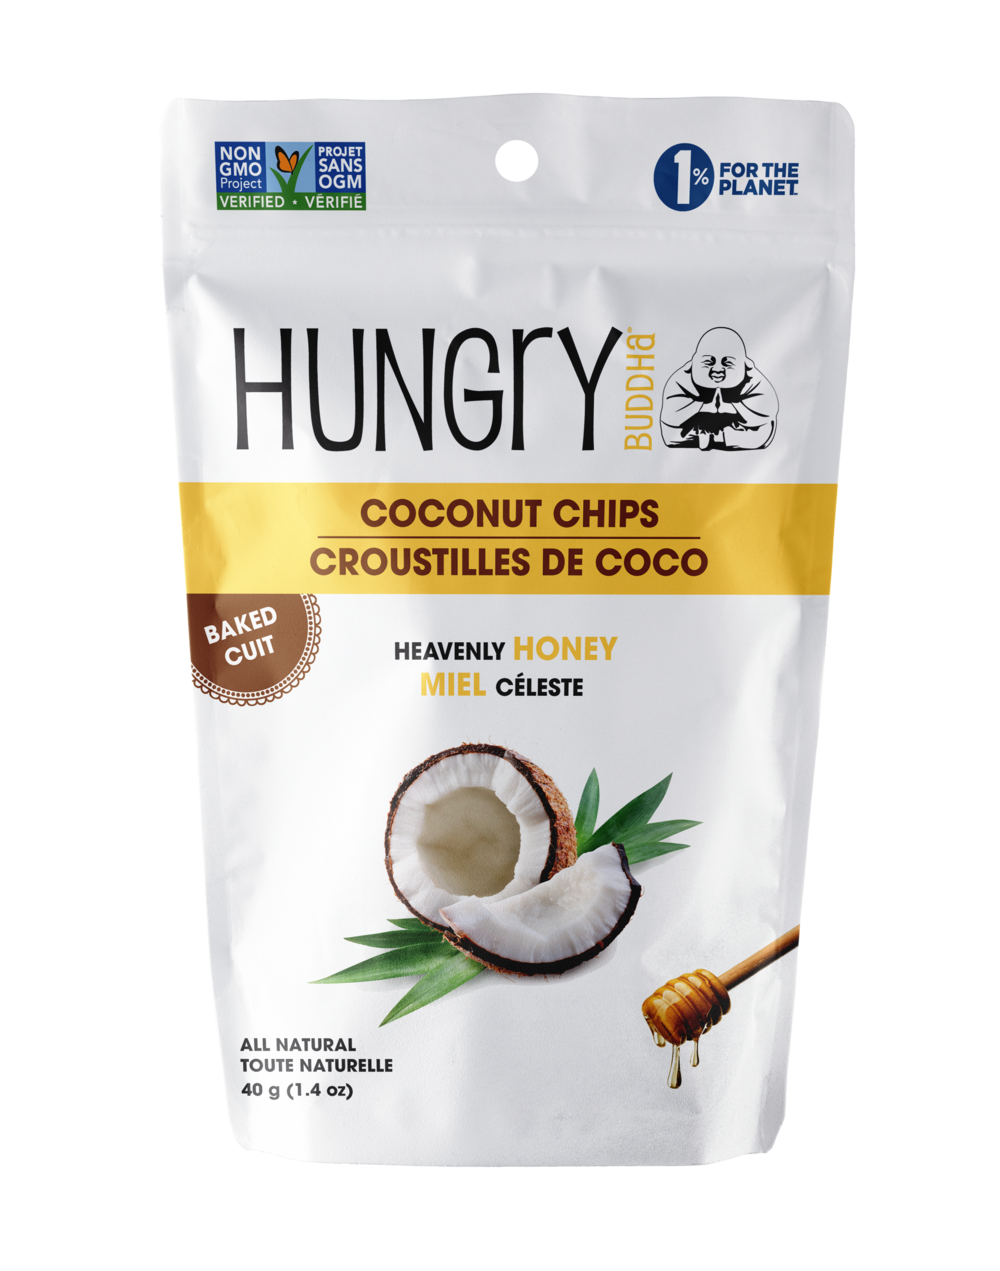 Hungry Buddha Heavenly Honey Coconut Chips